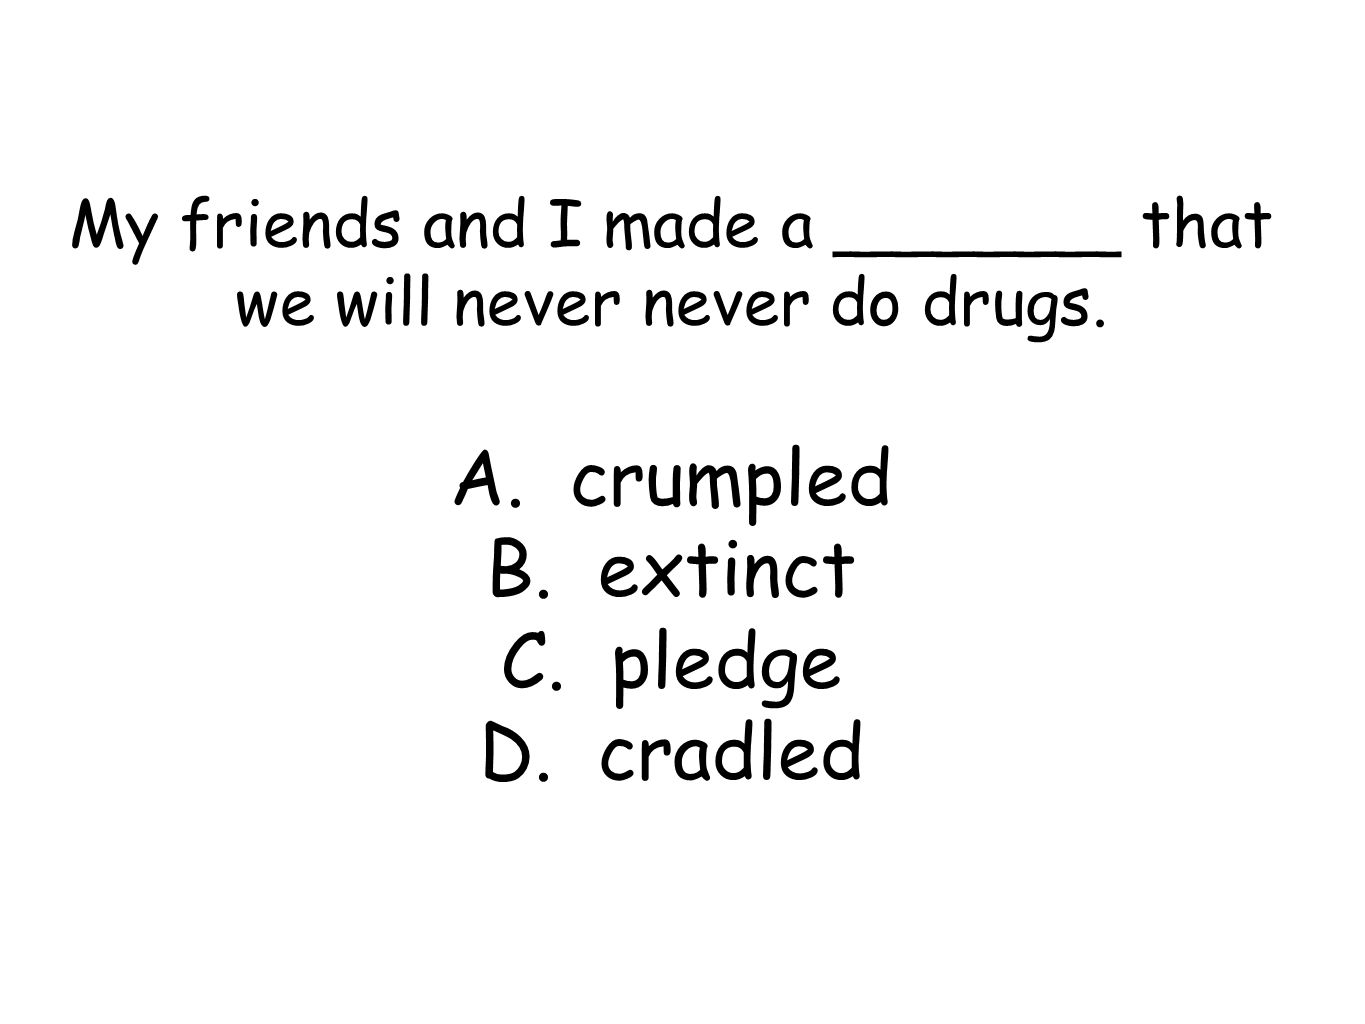 My friends and I made a _______ that we will never never do drugs.